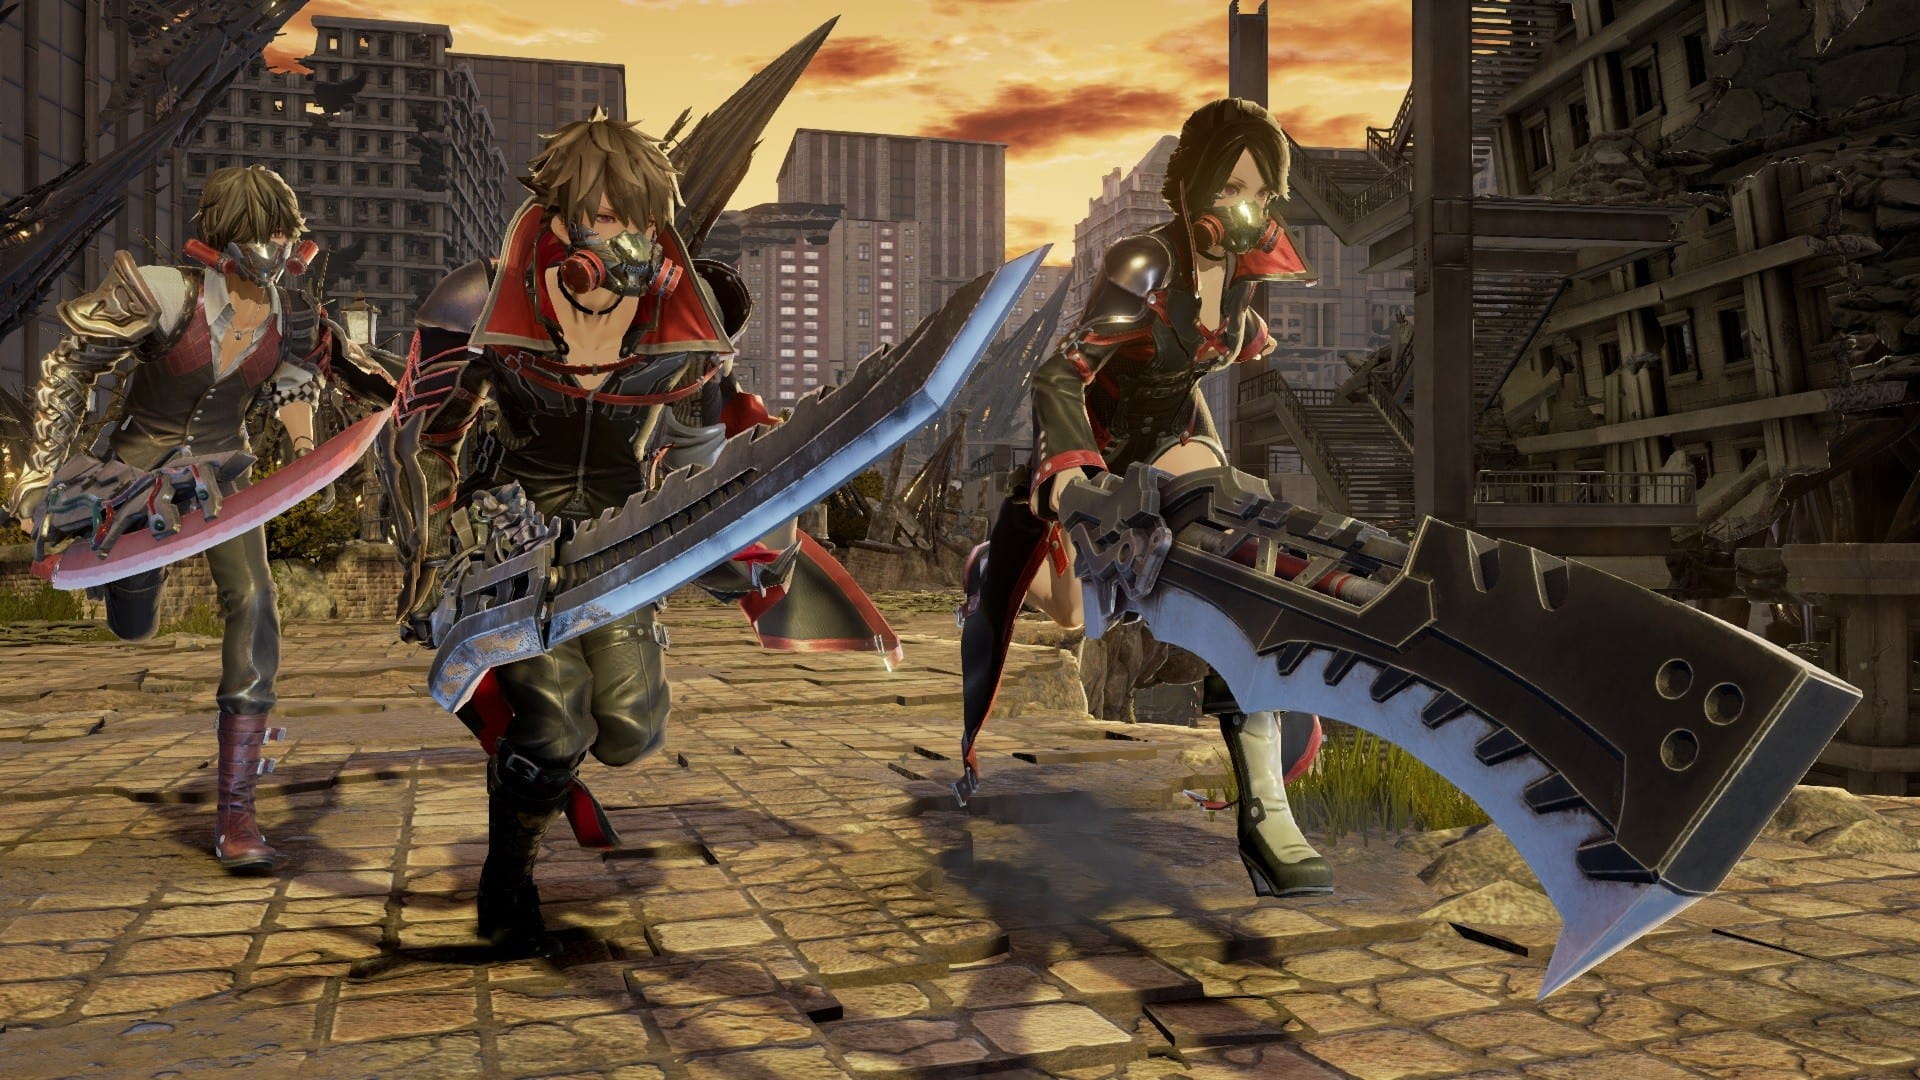 code vein download size, install size, hdd